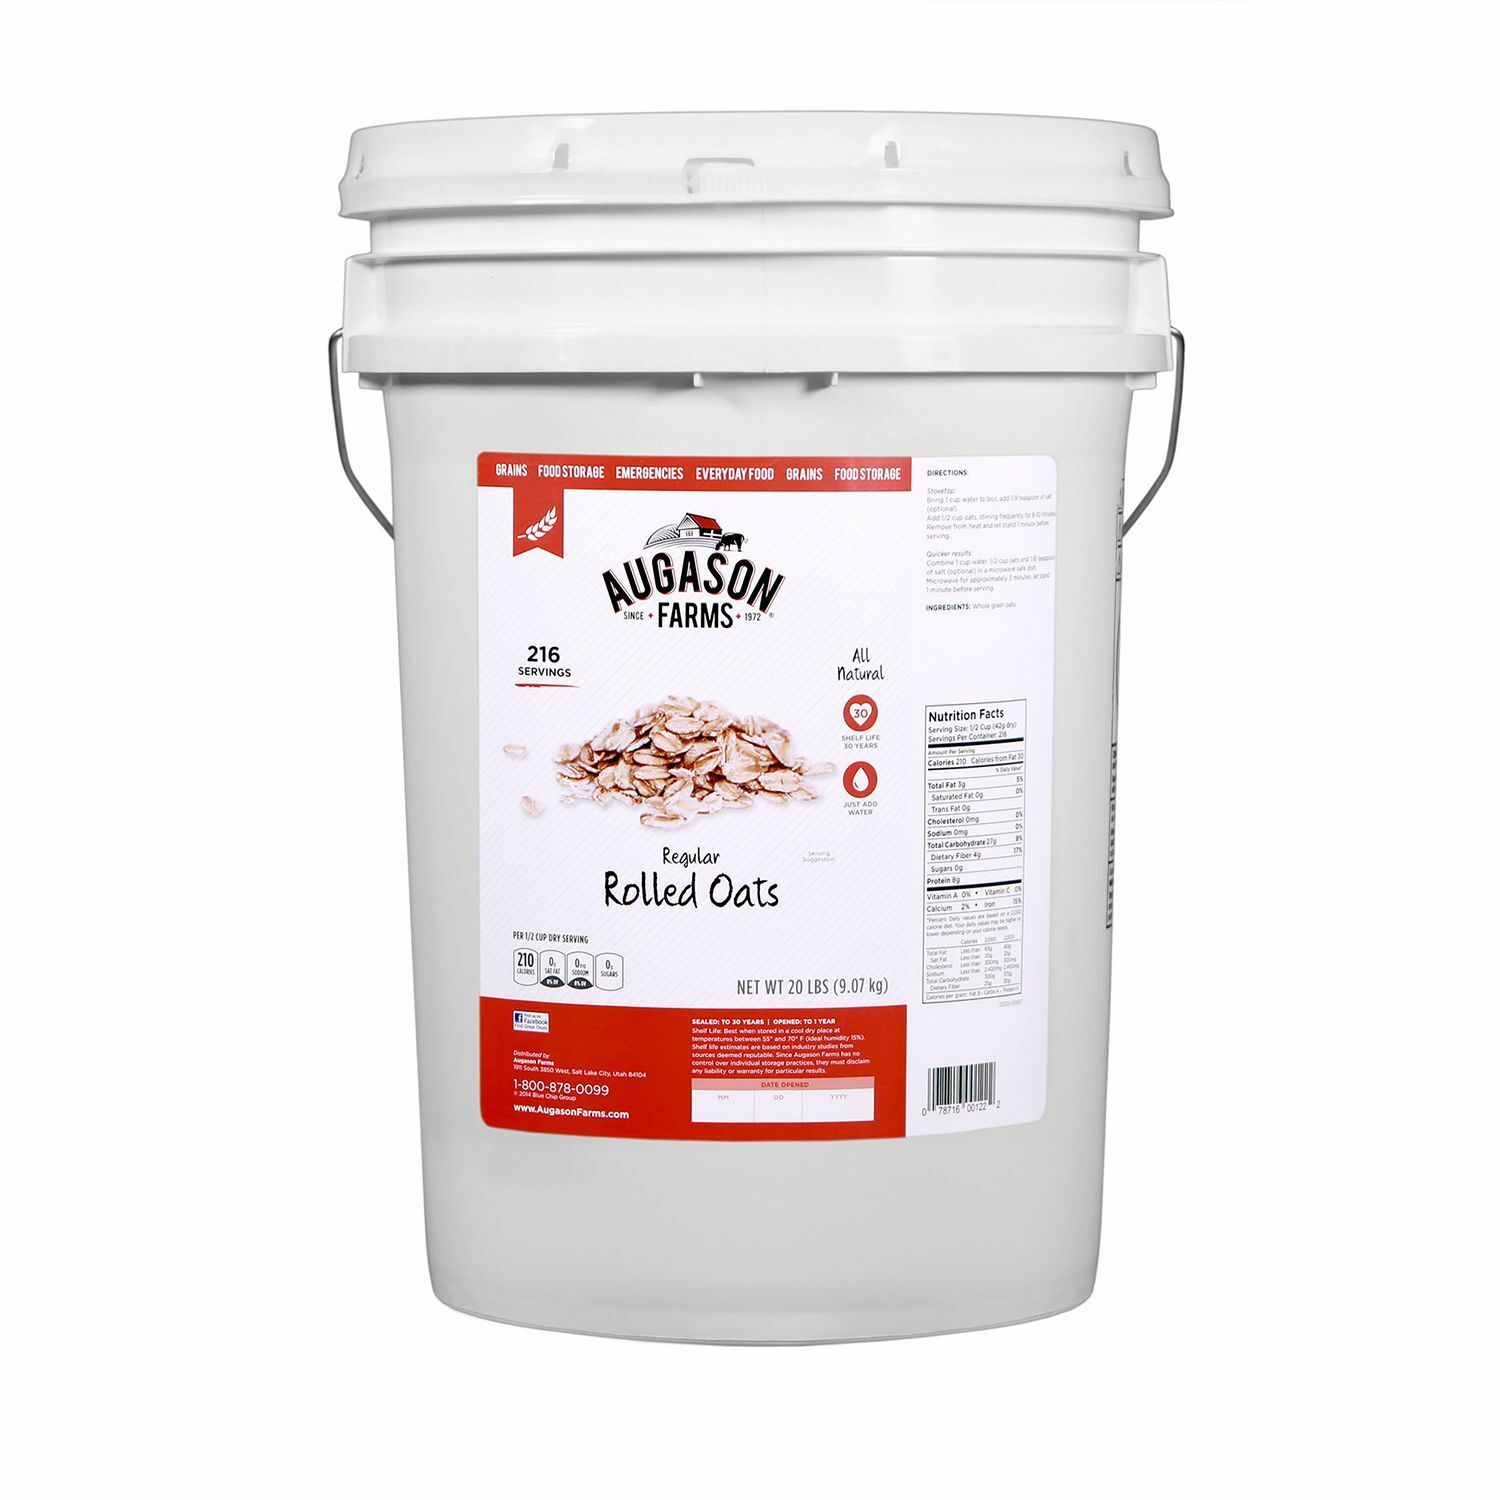 Augason Farms Regular Rolled Oats Emergency Survival Food Storage-20 lbs(NO TAX)